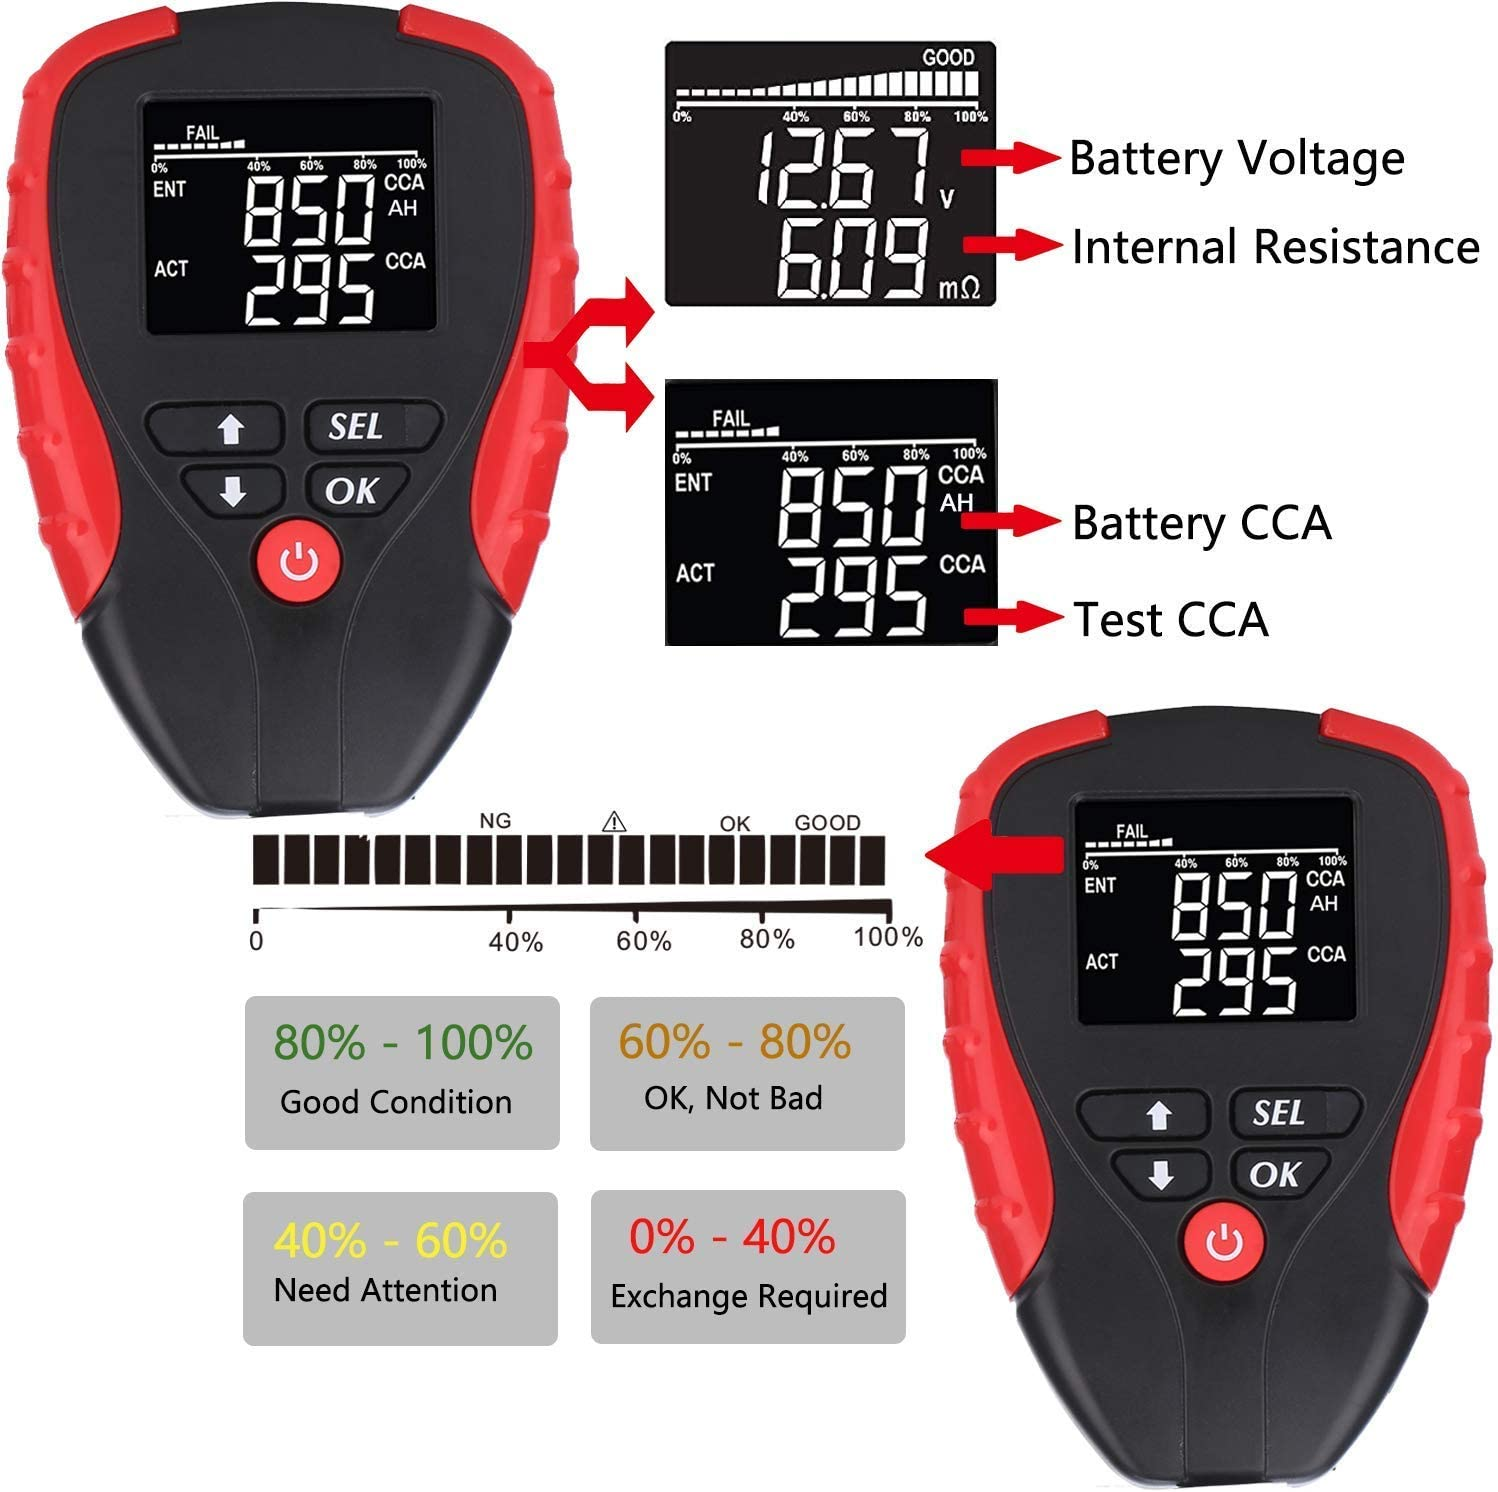 Semoic Digital 12V Car Battery Tester Pro With Ah Mode Automotive Battery Load Tester And Analyzer Of Battery Life Percentage,Voltage Motorcycle Resistance And Cca Value For Car Boat